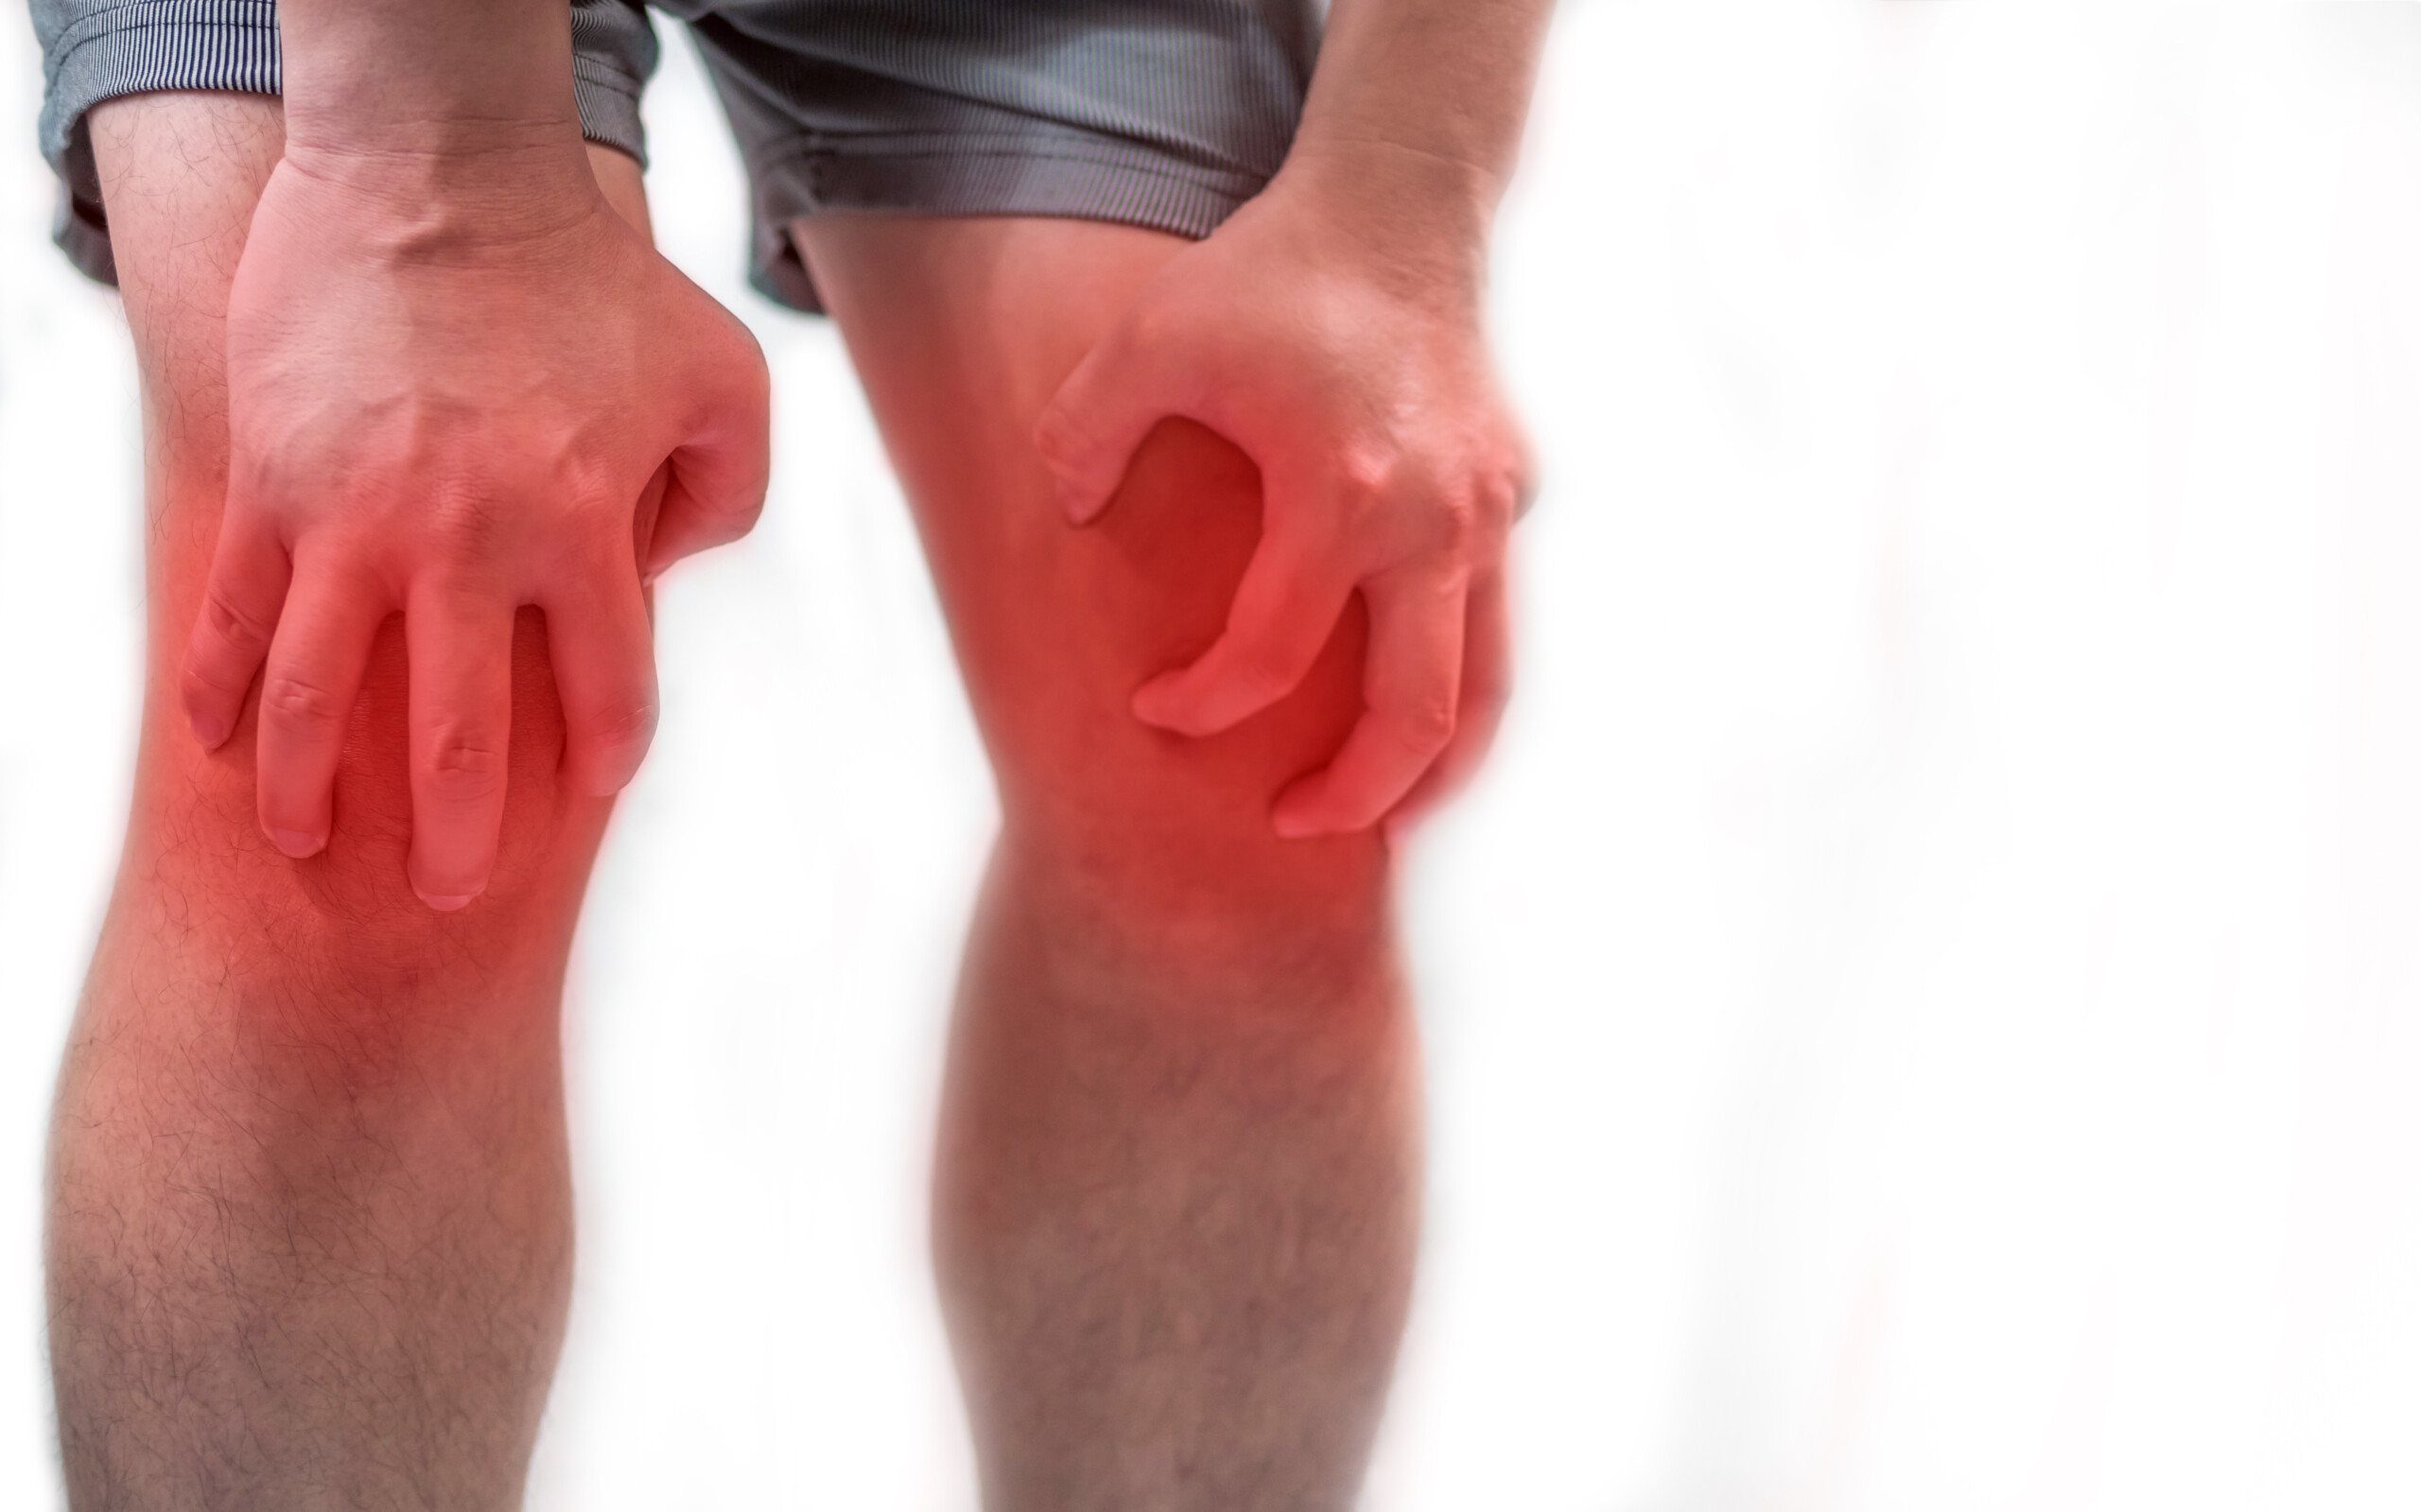 Both Knees Sore for No Reason: Causes and Solutions